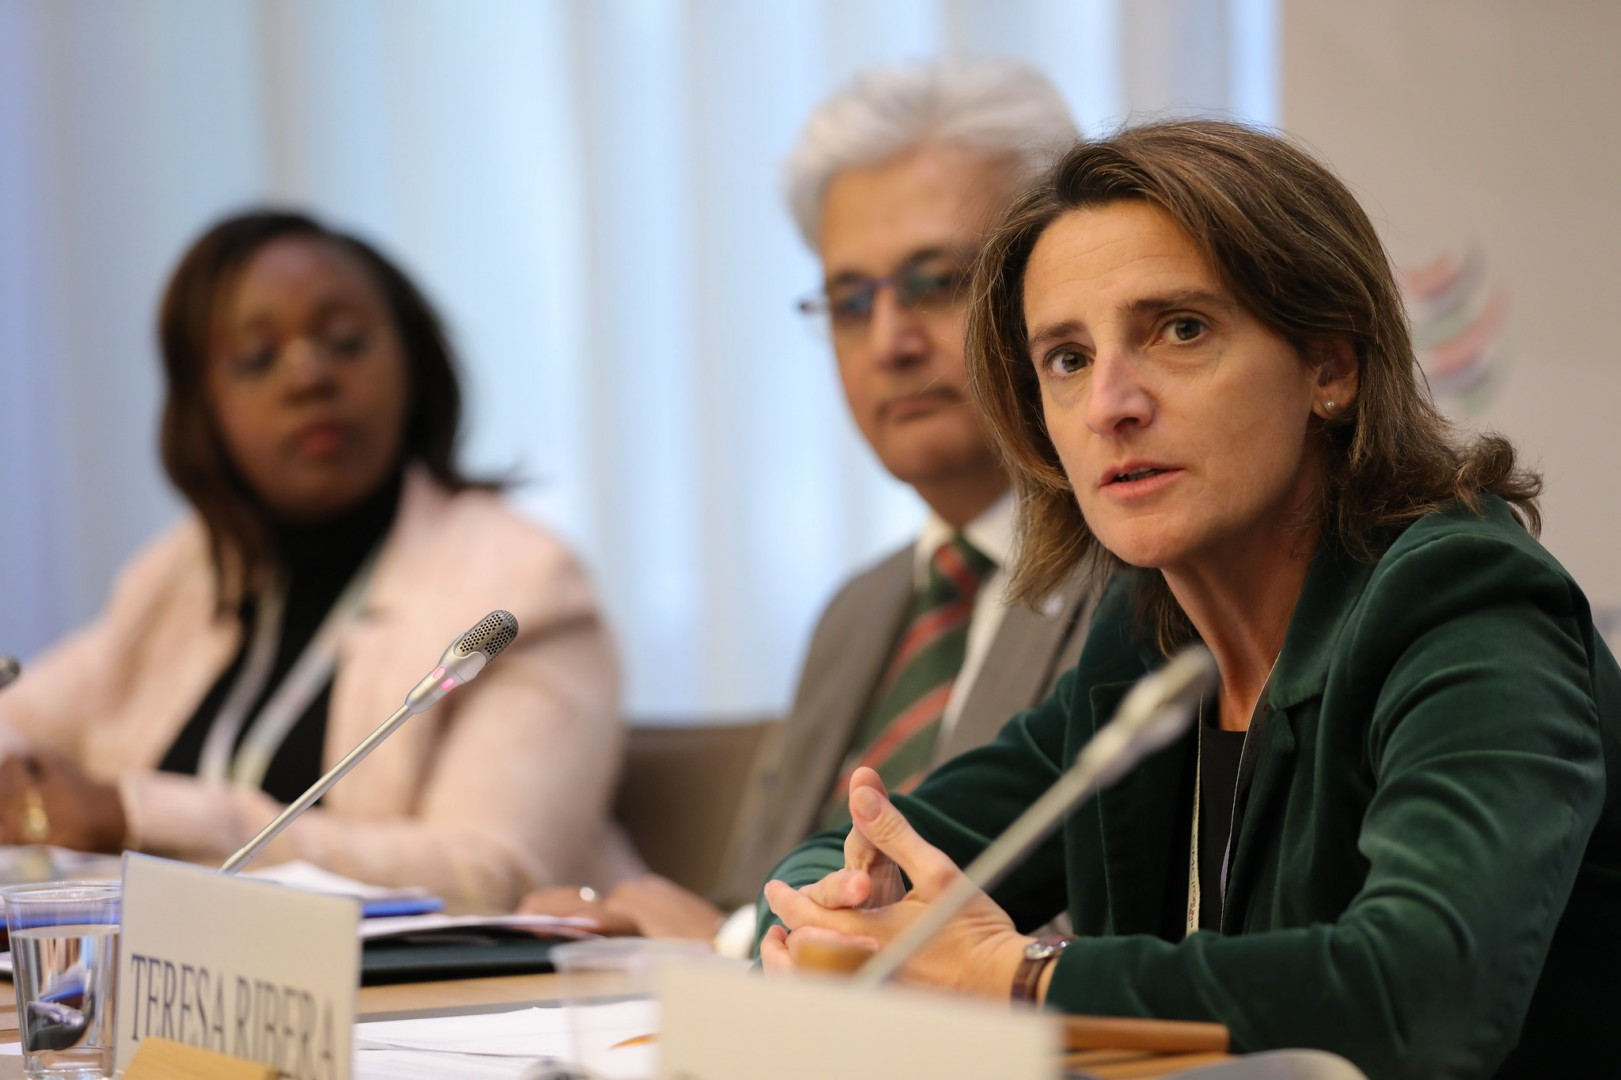 Teresa Ribera, Environment minister of European solar hotspot Spain, was among the officials backing the calls for a new solar manufacturing push. Image credit: World Trade Organization / Twitter